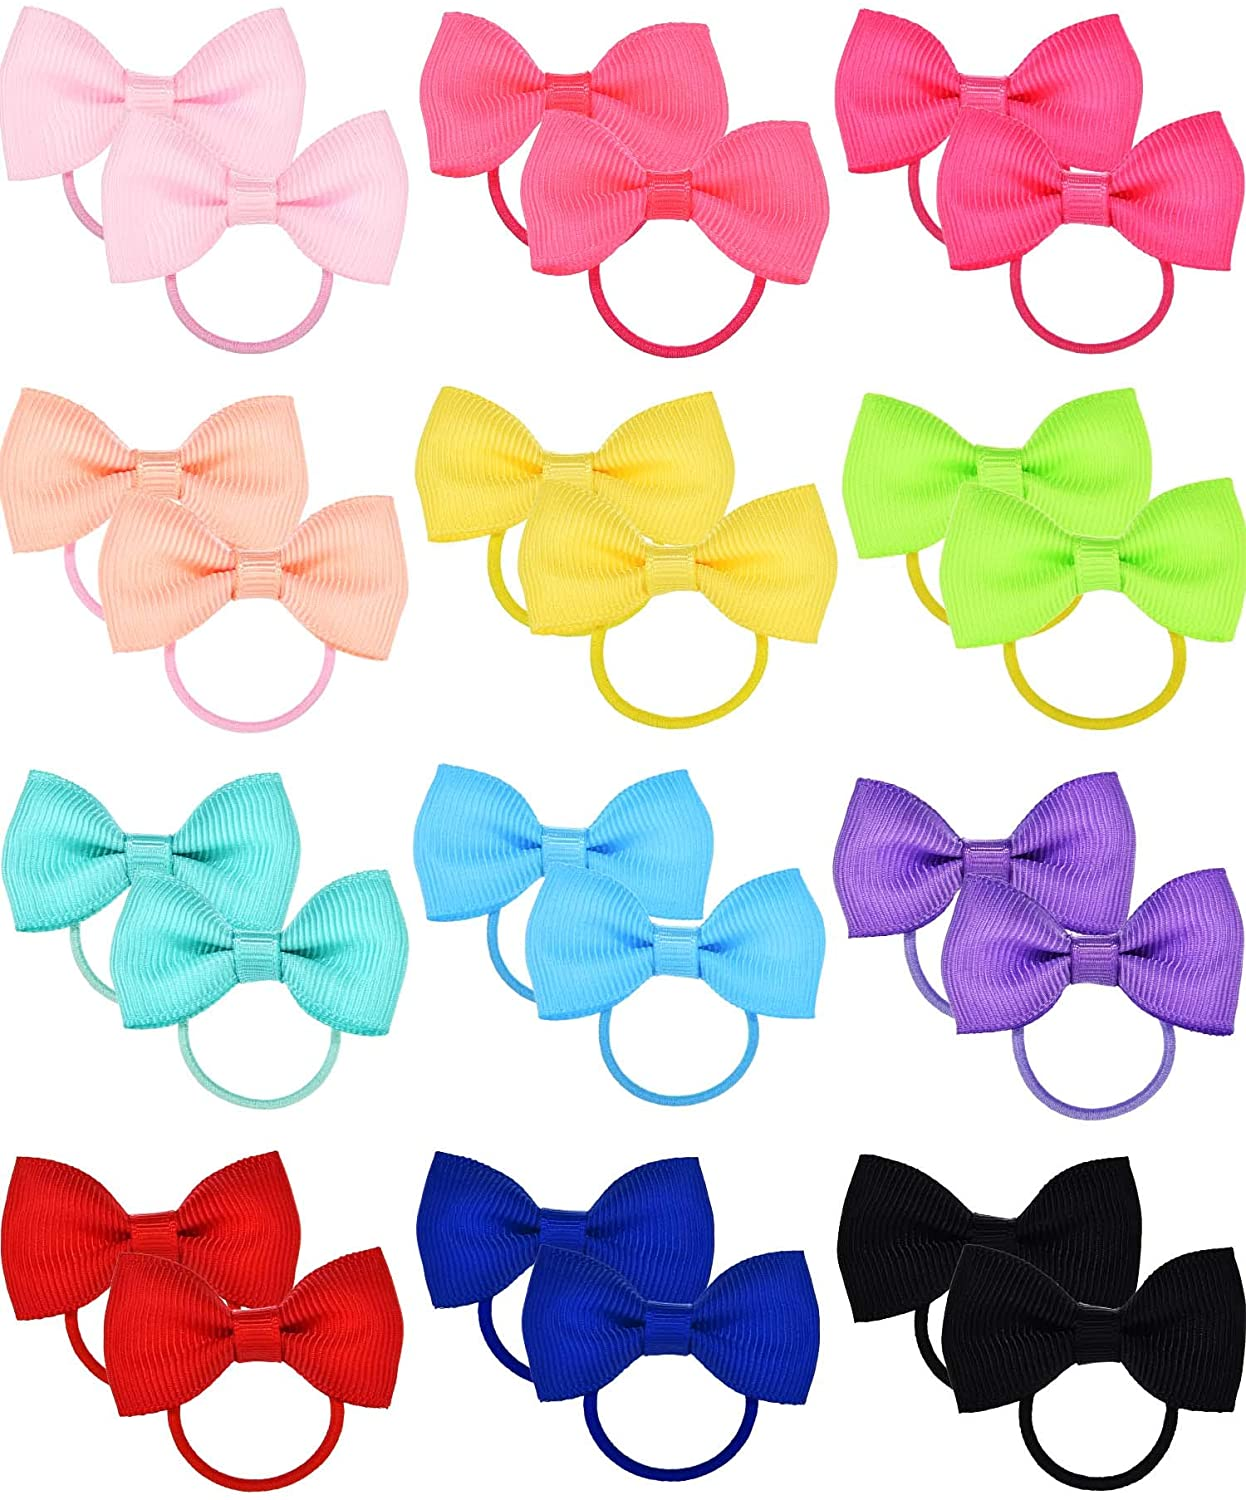 Bememo 50 Pieces Baby Girls Bow Elastic Ties Ponytail Holders Tiny Soft Rubber Bands for Baby Kids (3.14 inch)